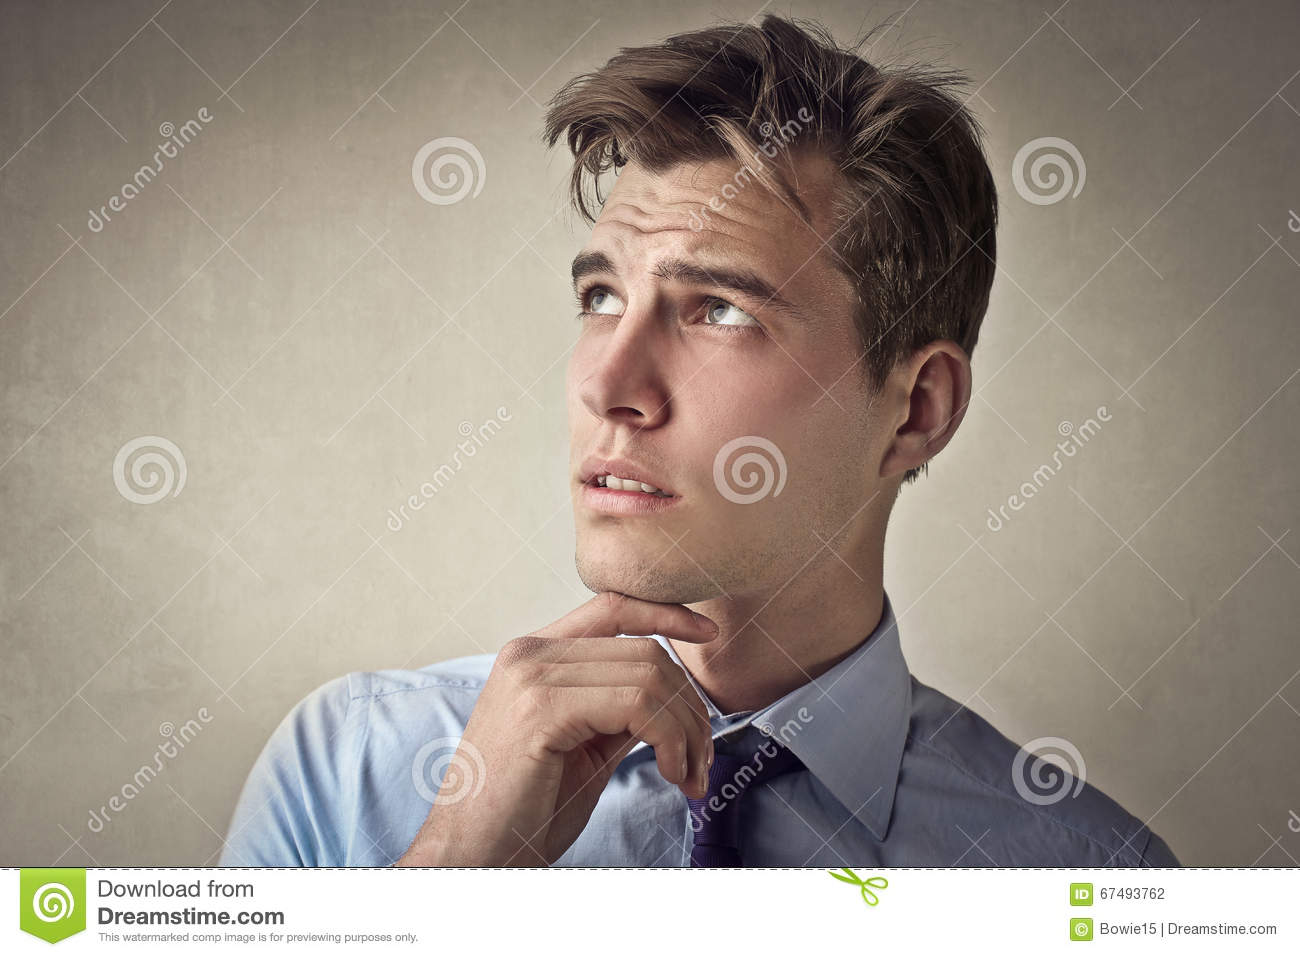 Man thinking with his hand on his chin